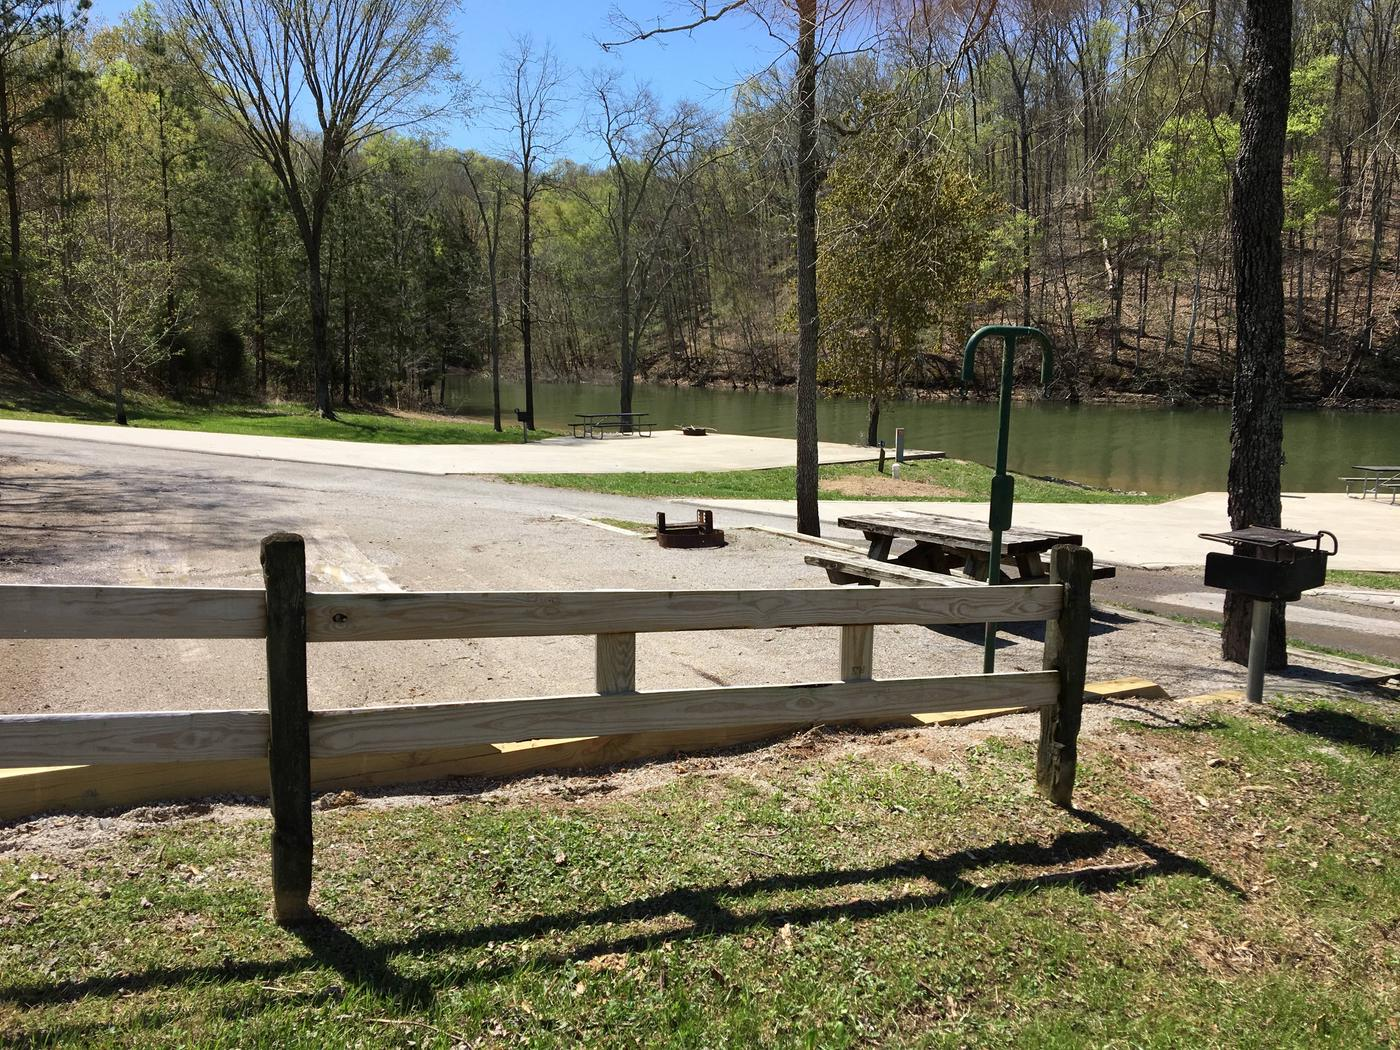 LILLYDALE CAMPGROUND SITE # 74 SIDE SAFETY RAILLILLYDALE CAMPGROUND SITE # 74